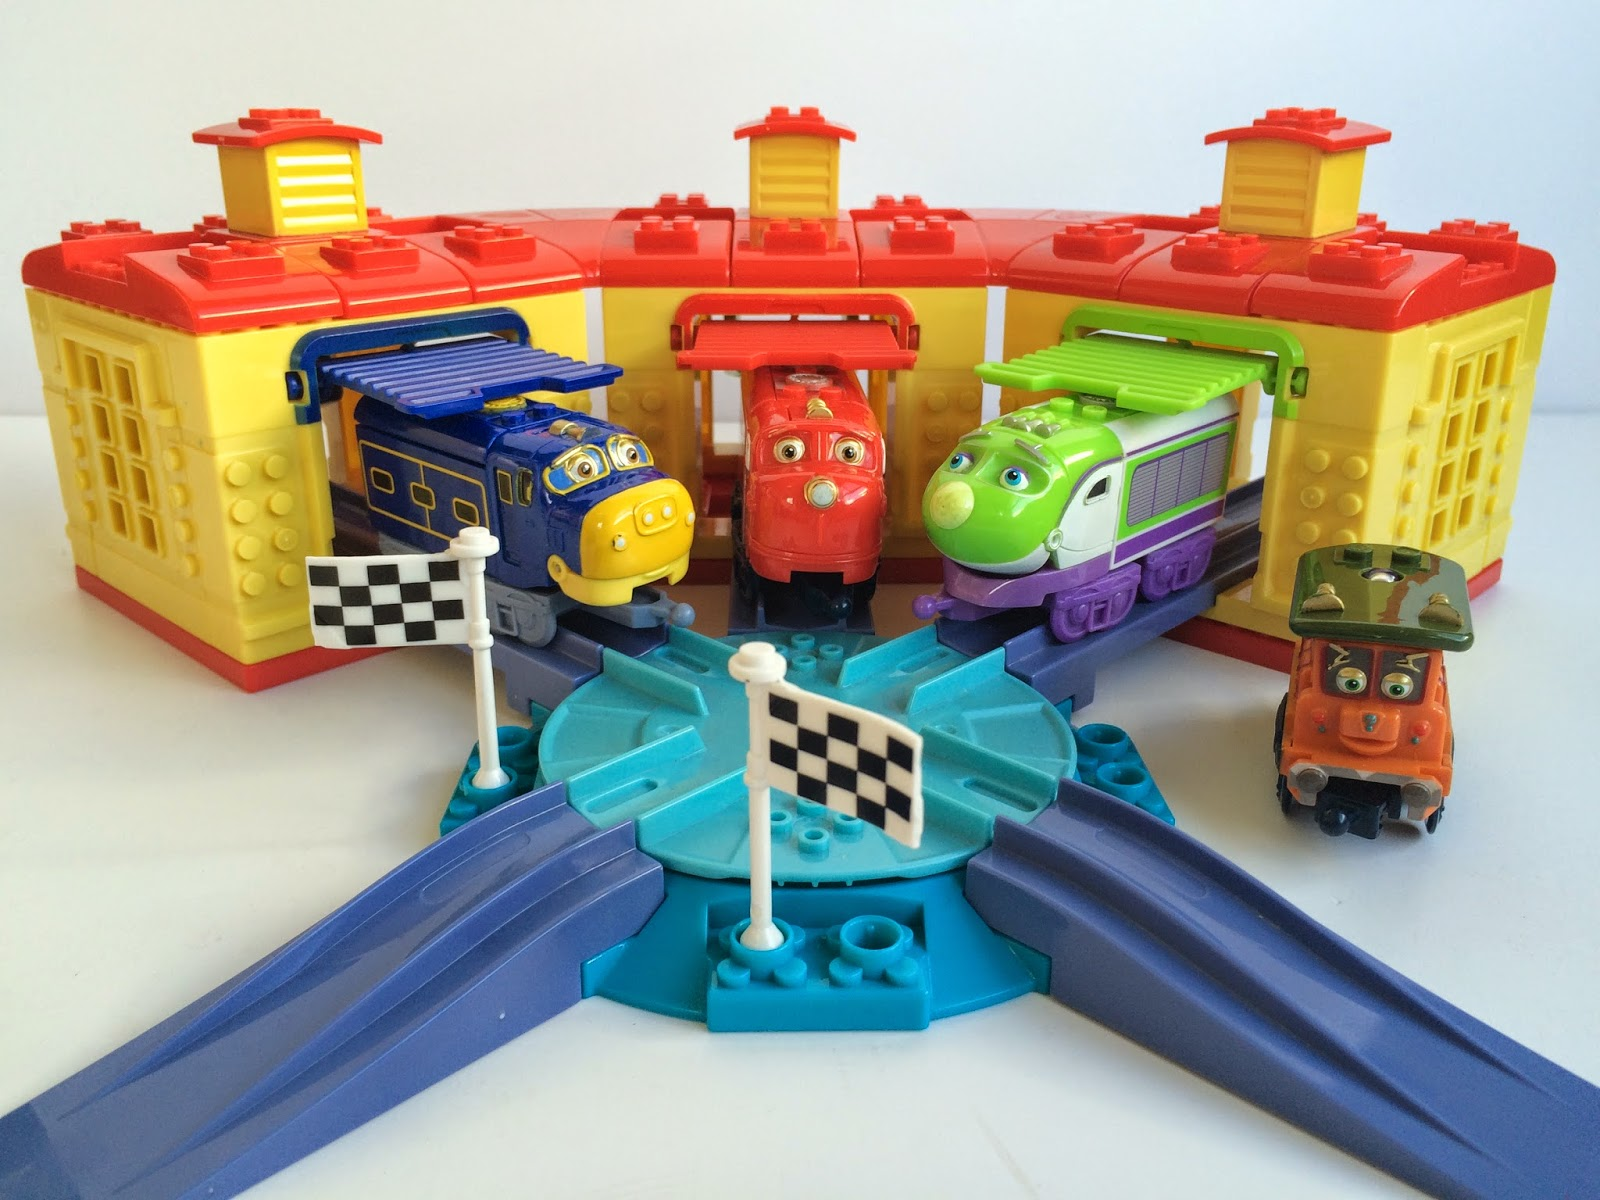 Chuggington Roundhouse from Mega Bloks